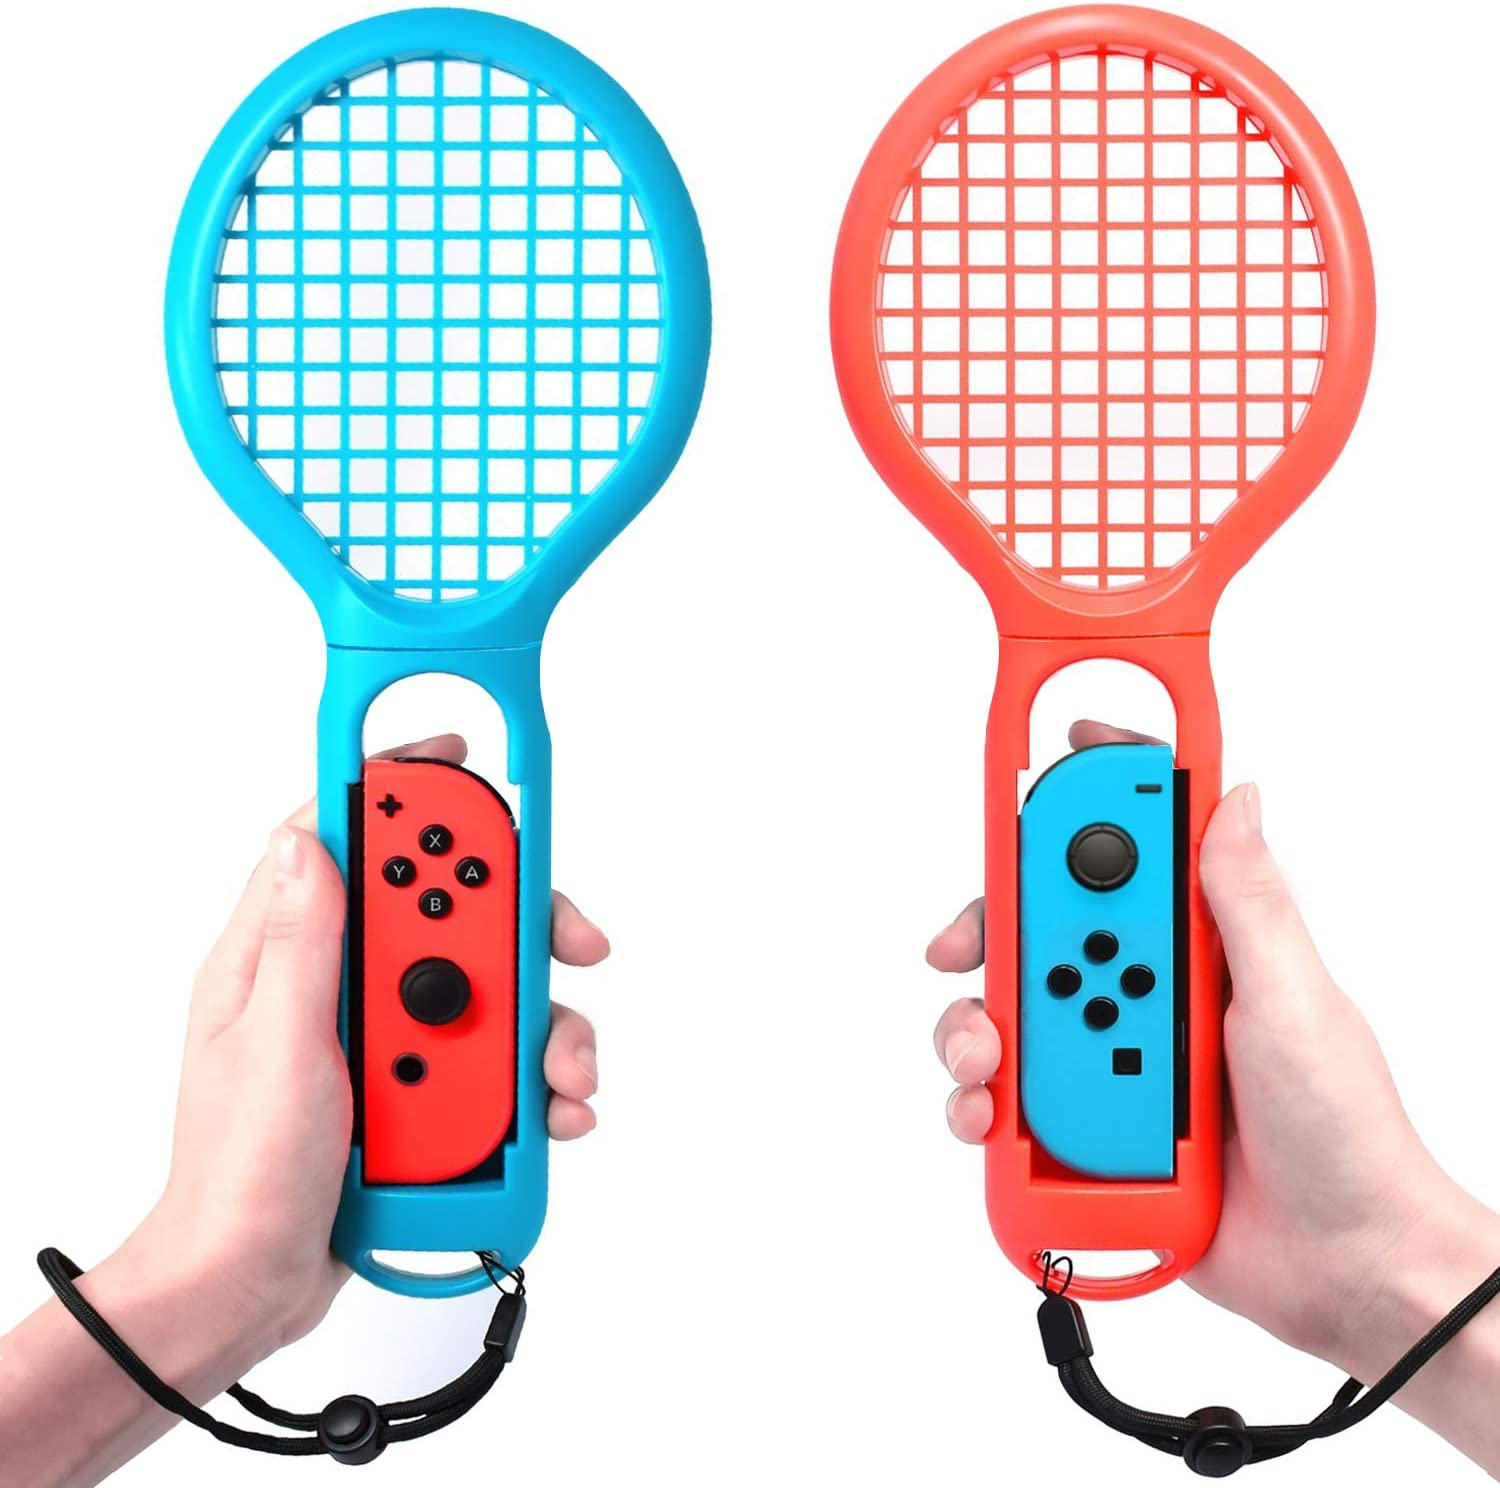 Tennis Racket for Nintendo Switch Joy-Con Controller,Game Accessories for Nintendo Switch Mario Tennis Aces One Pair(Blue and Red)